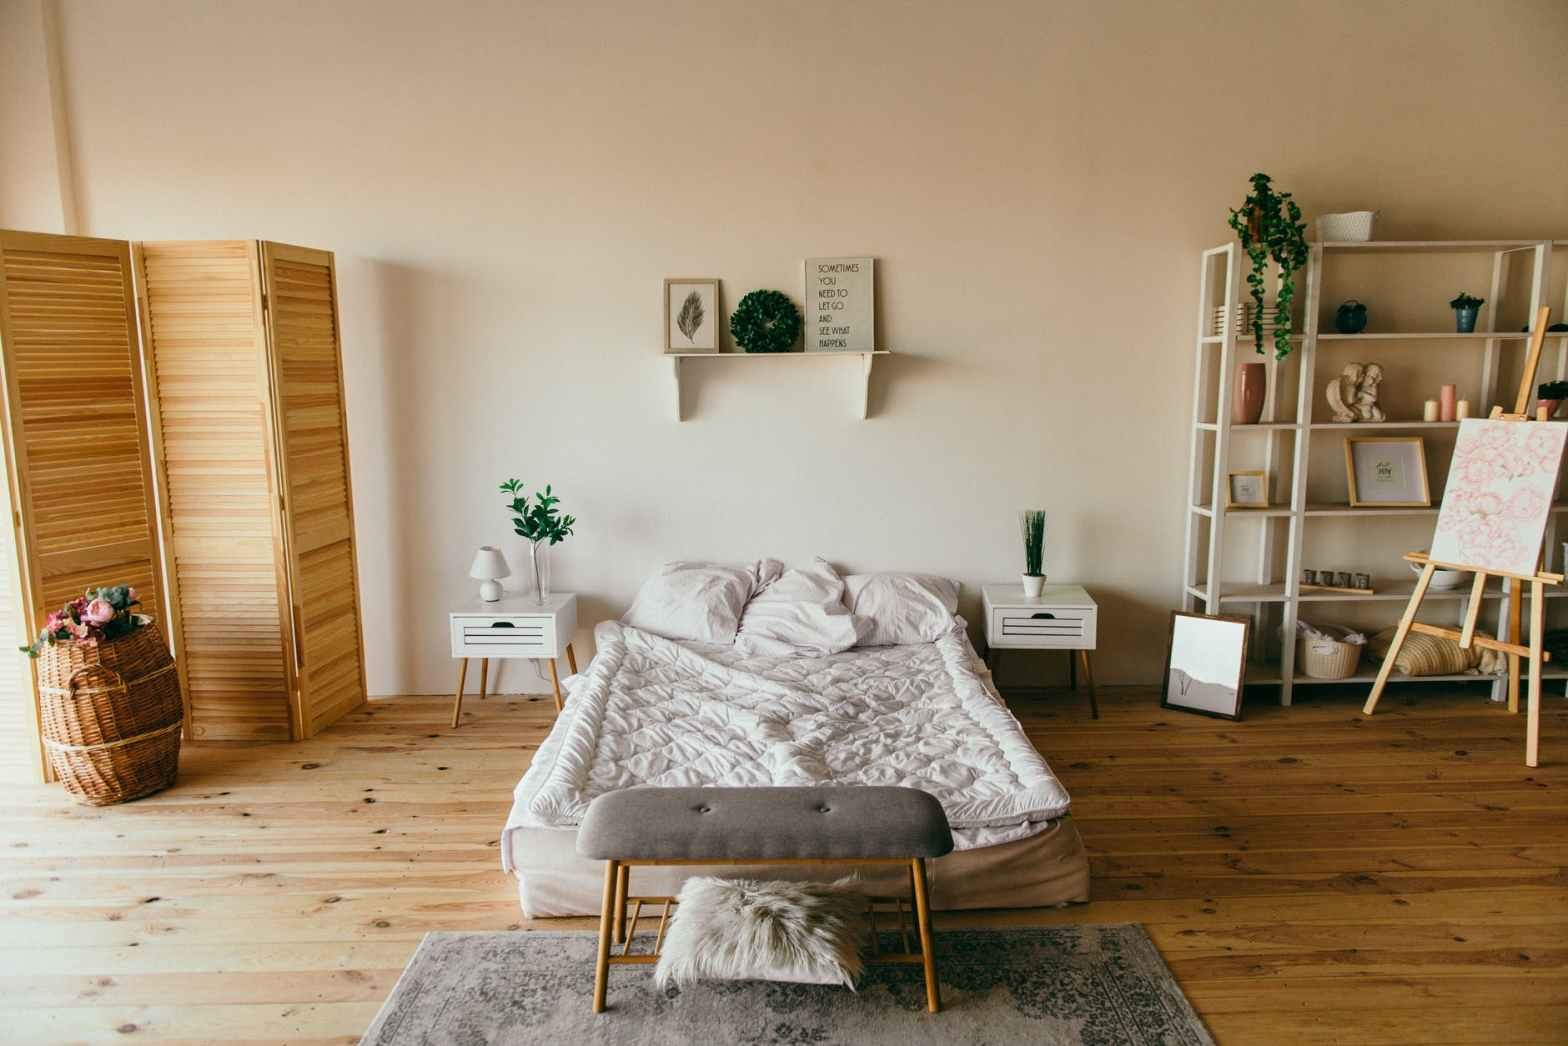 Eco friendly bedroom. – Road to sustainability